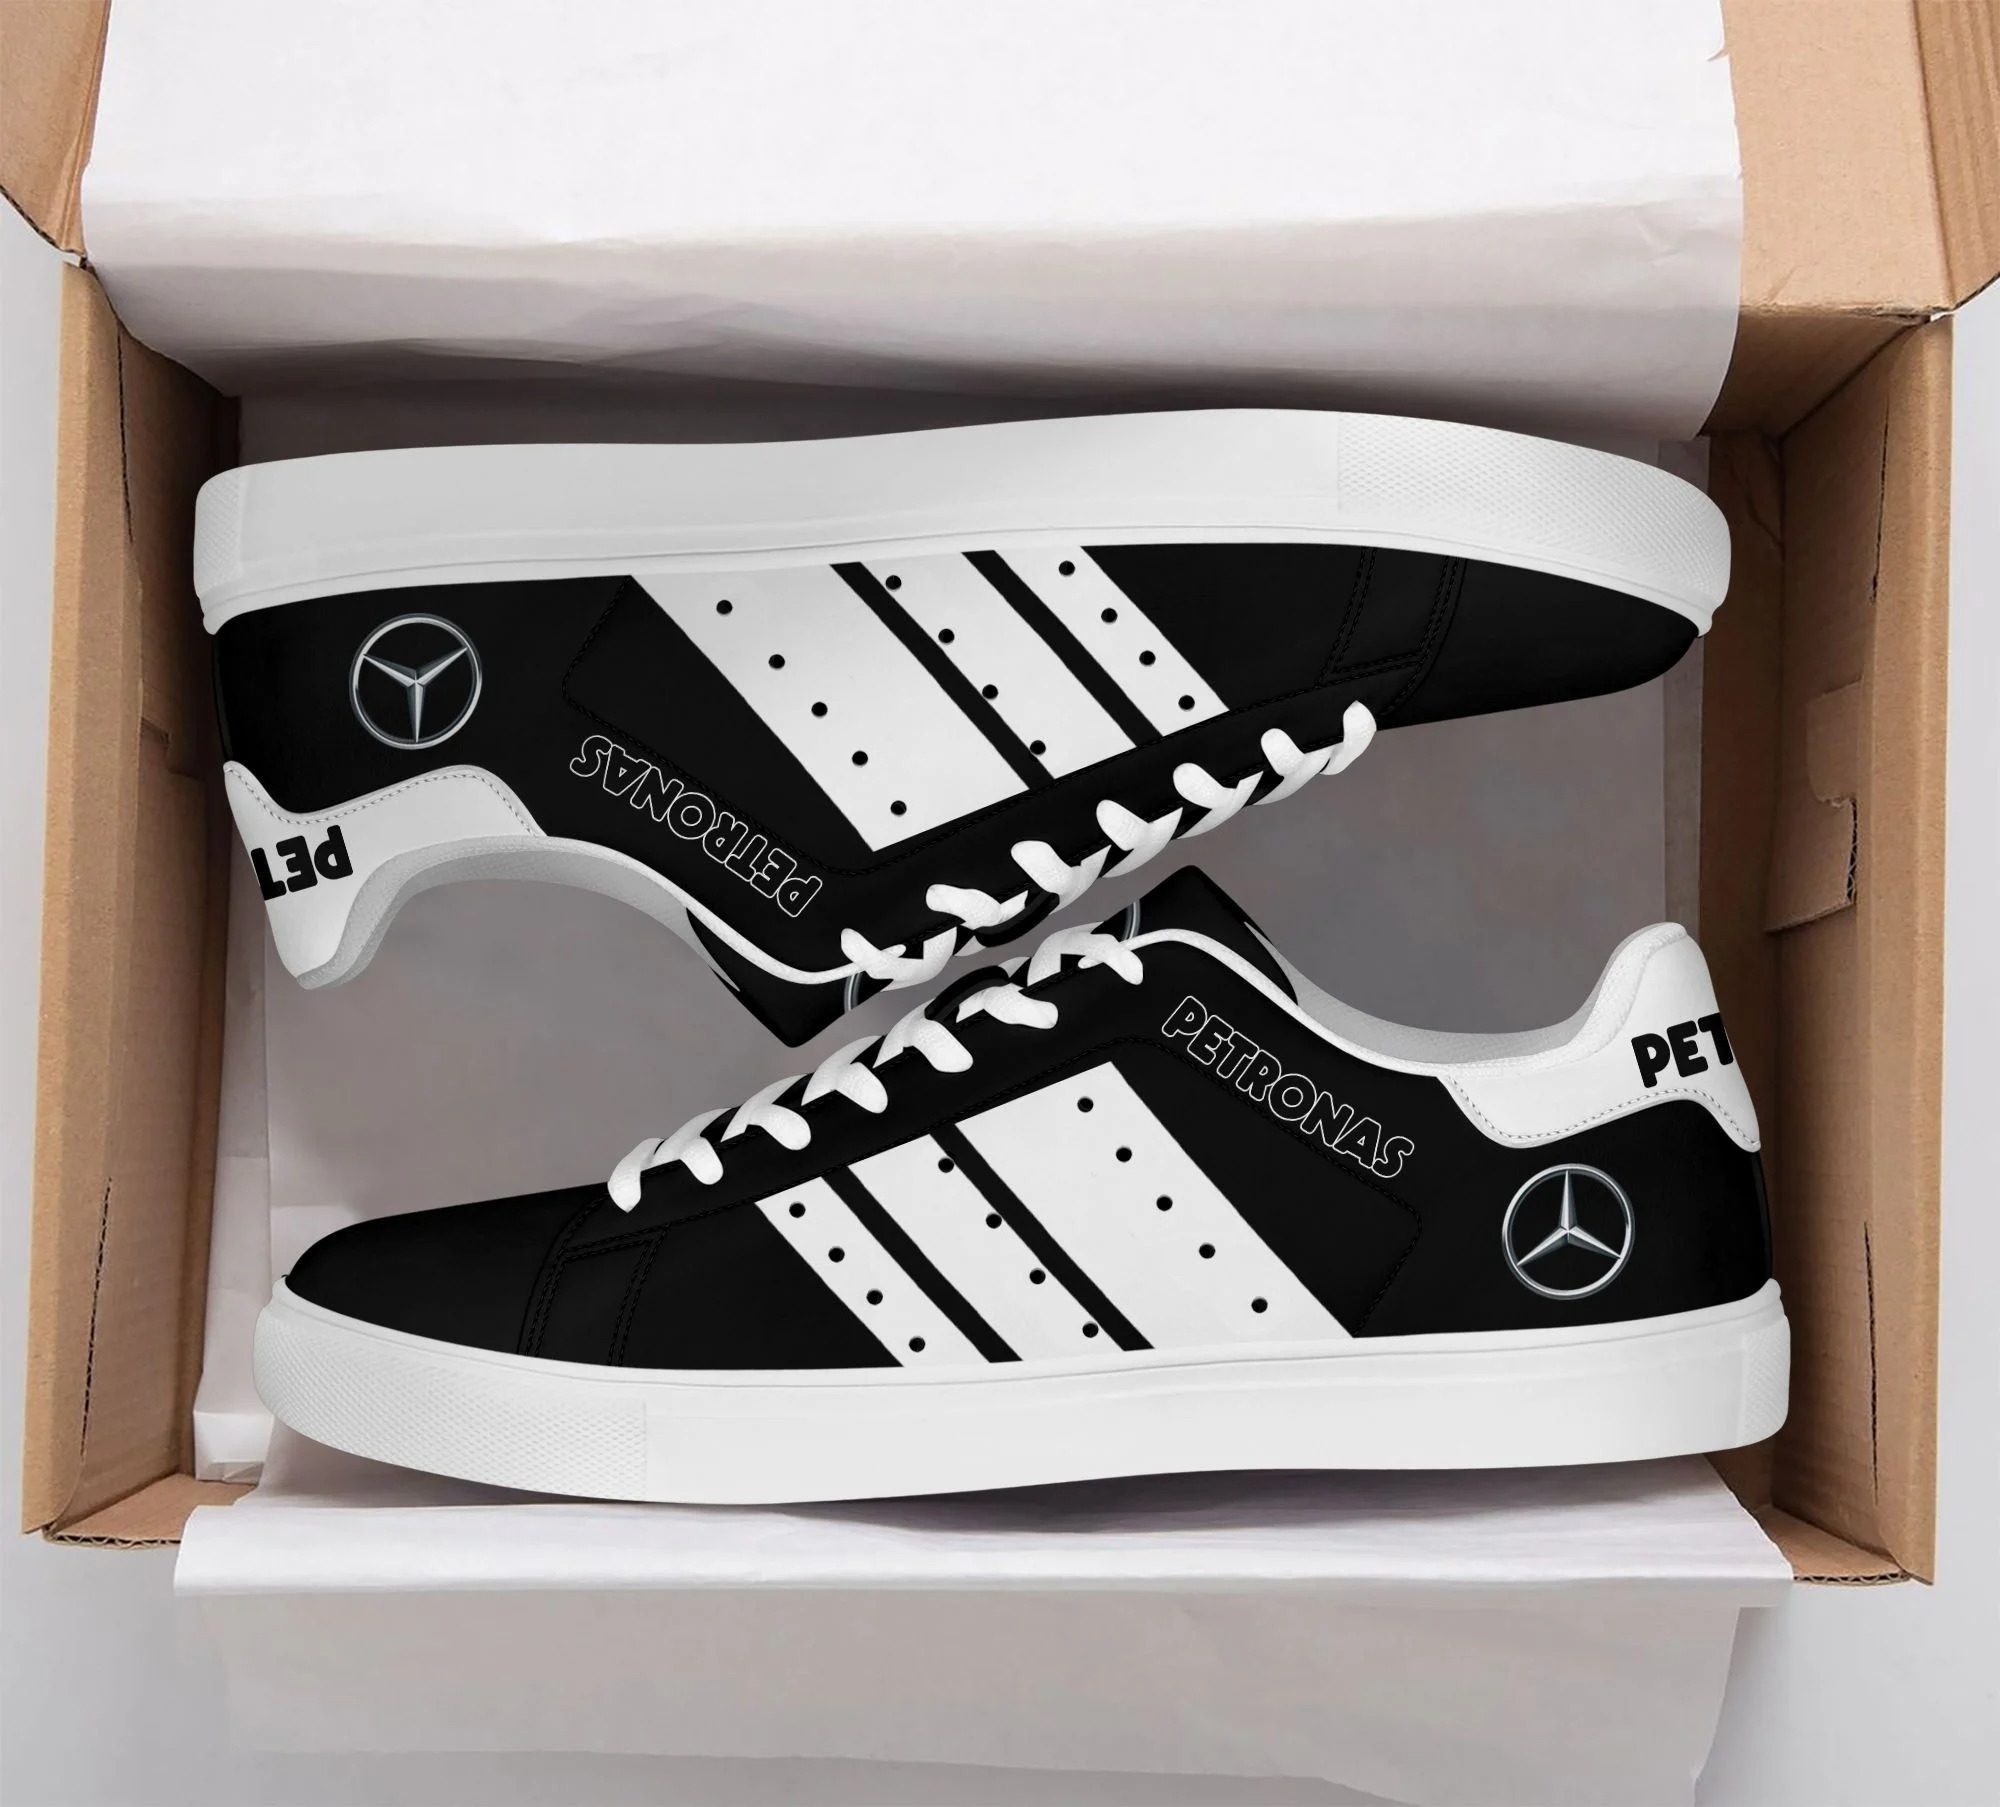 Mercedes AMG F1 stan smith low top shoes 1